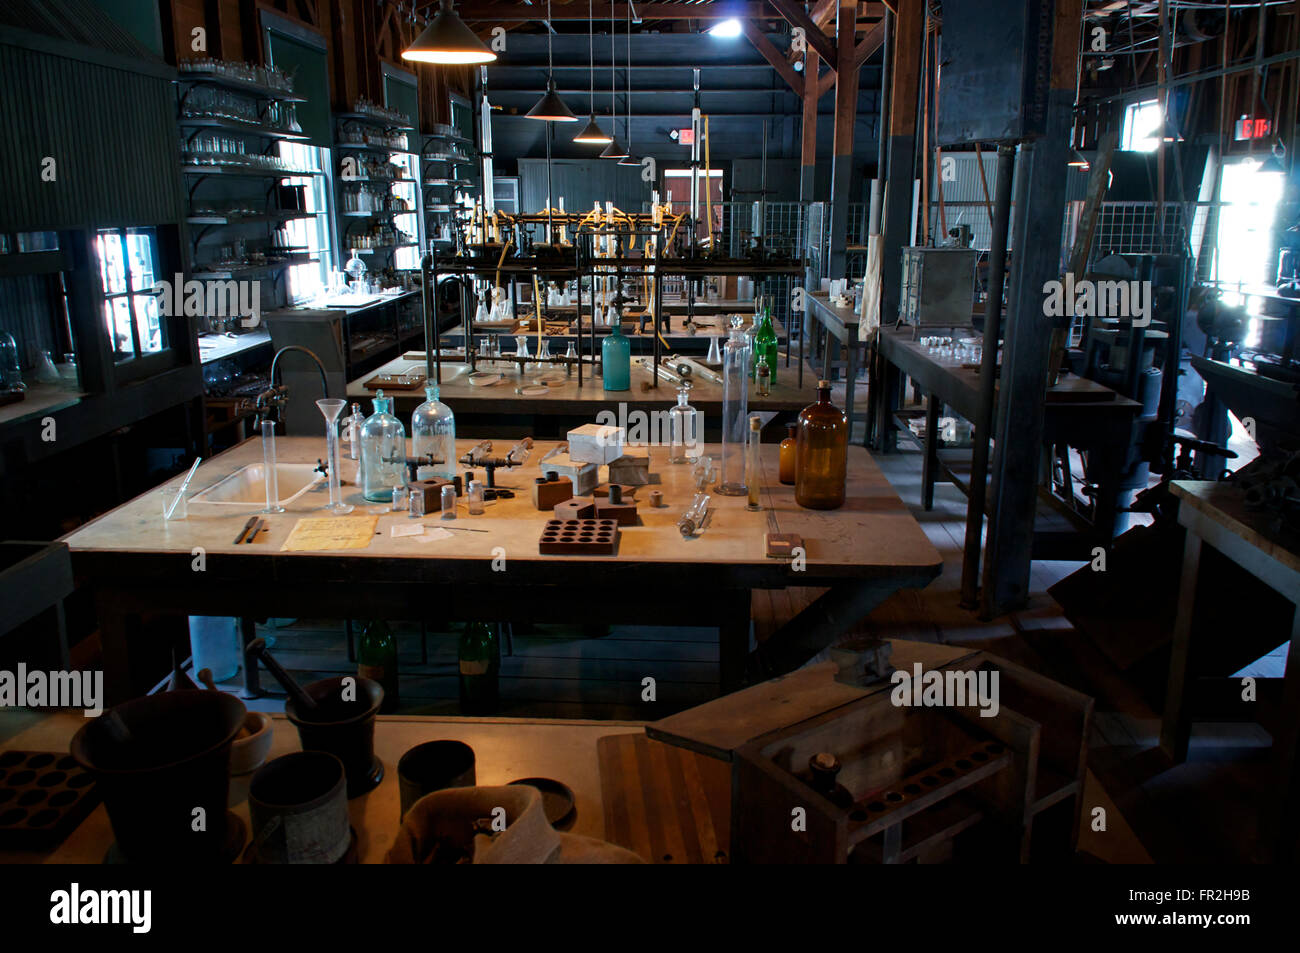 An old abandoned laboratory from the early 1900's. with work tables, bottles, beakers. - Stock Image